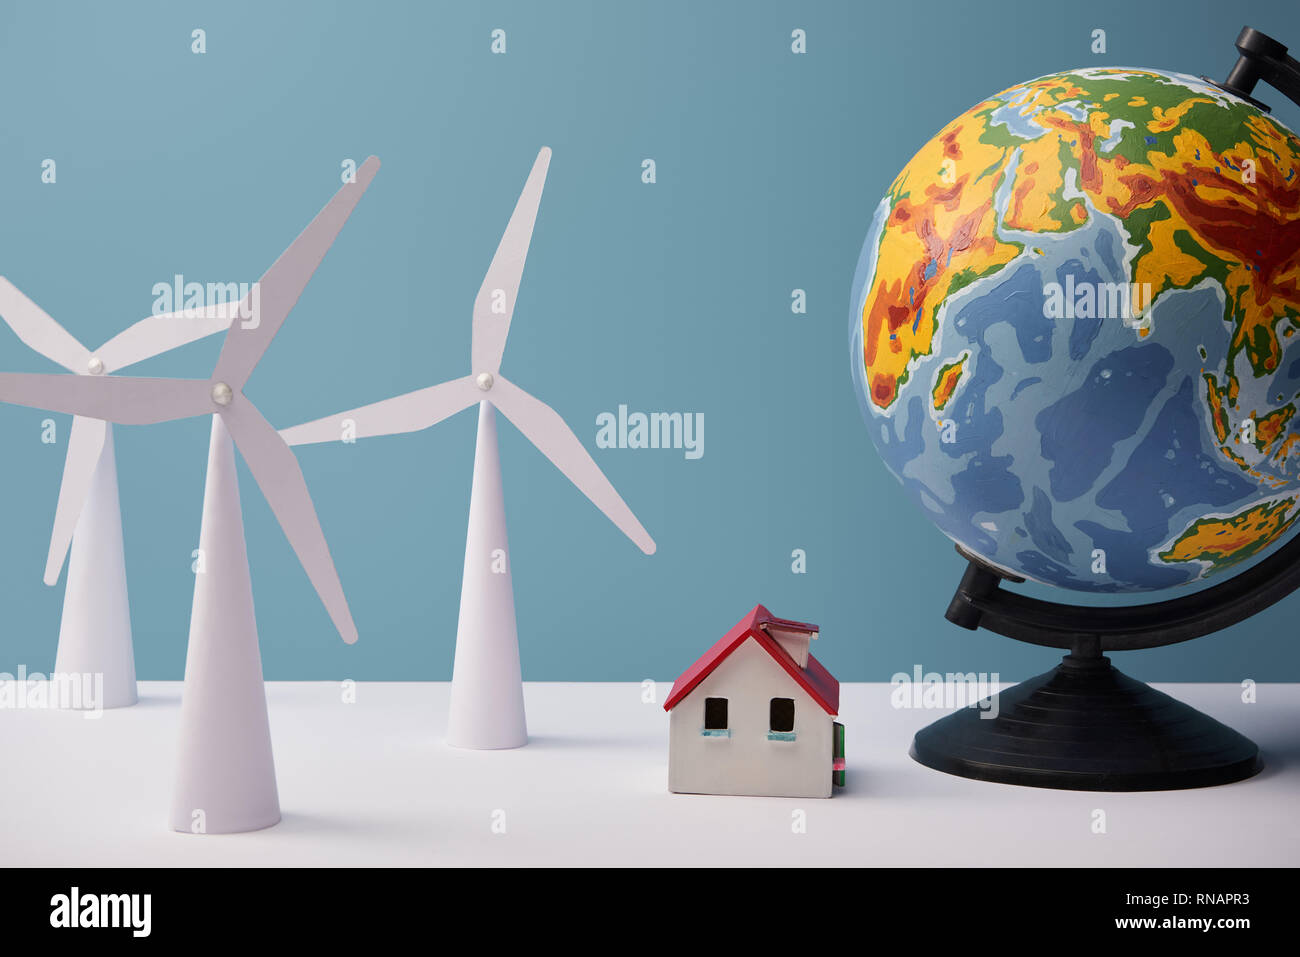 windmill and house models with big globe on white table and blue background - Stock Image